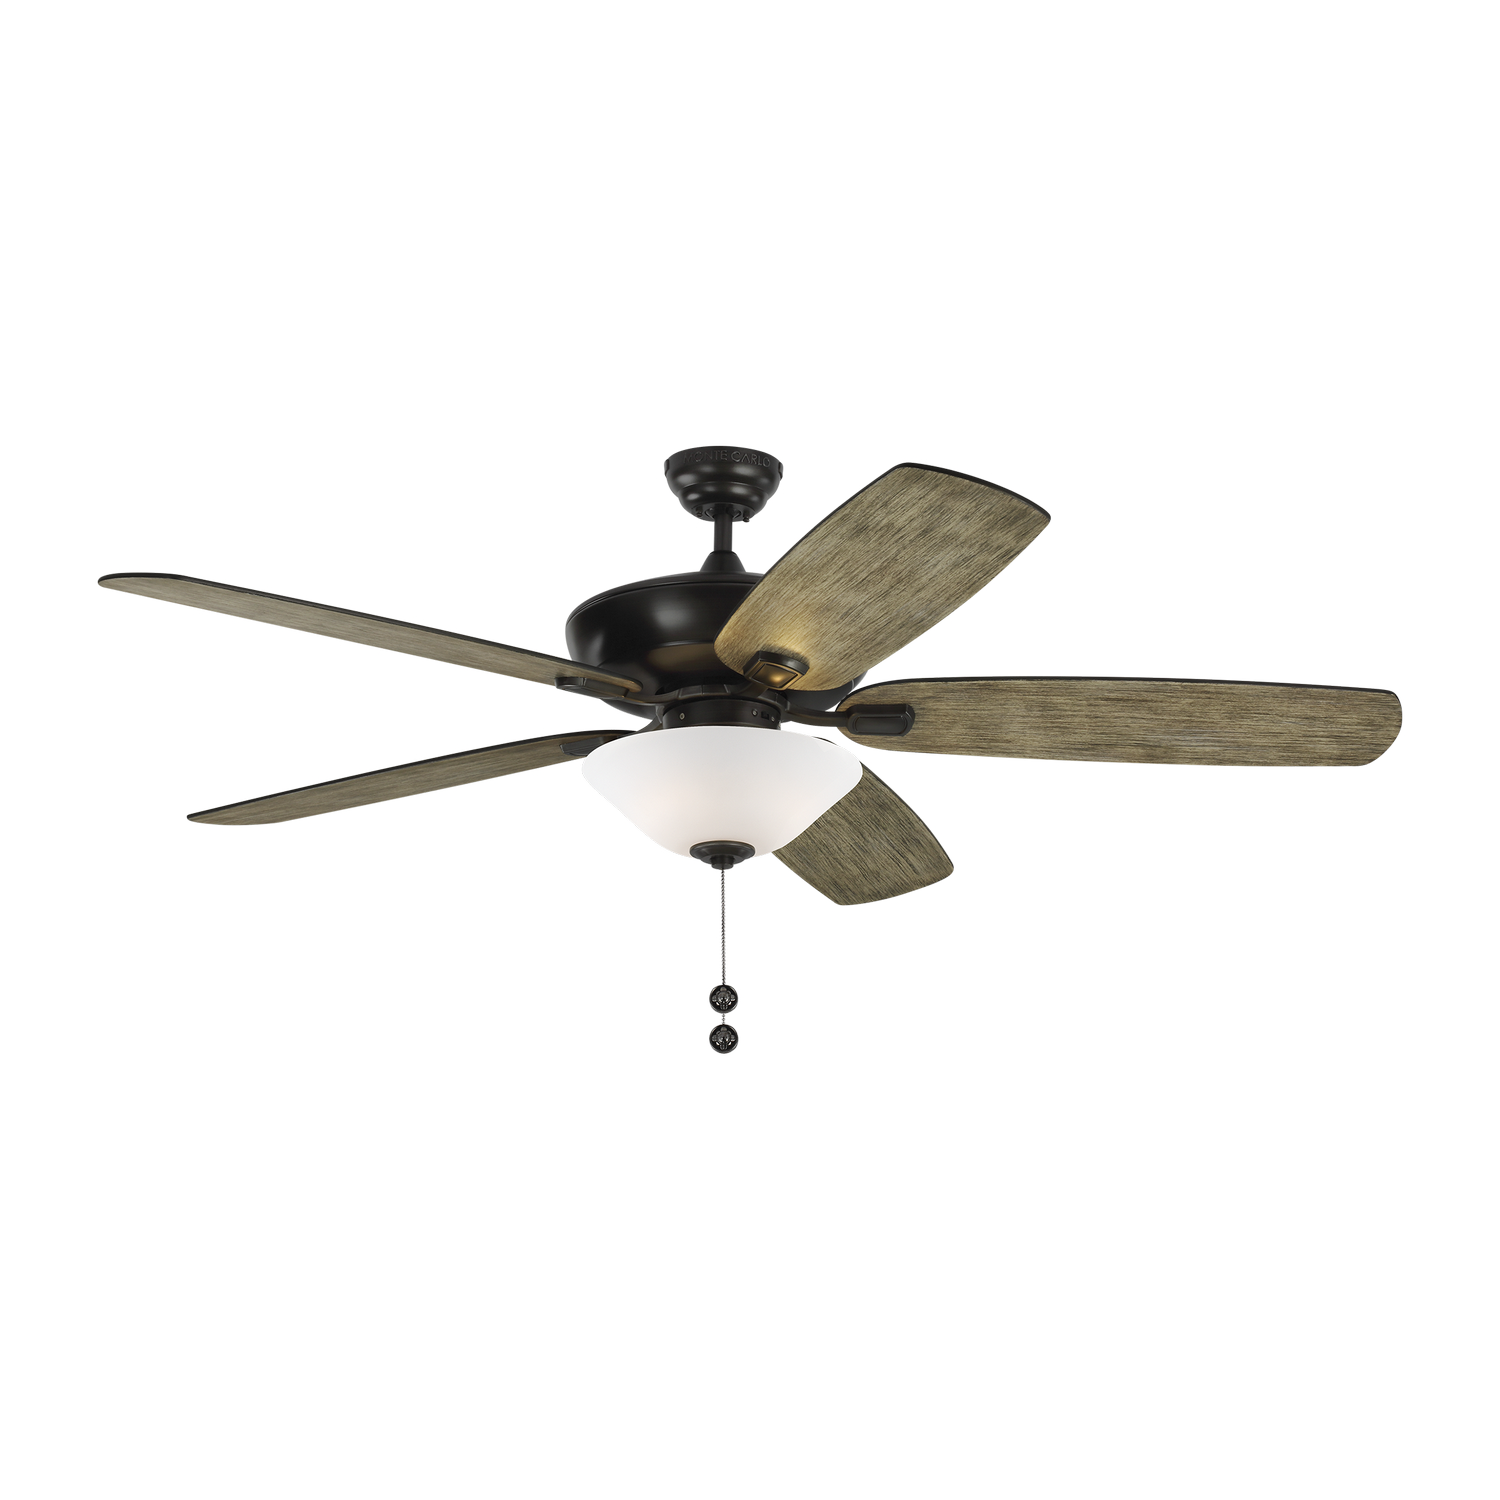 60 inchCeiling Fan from the Colony Super Max Plus collection by Monte Carlo 5CSM60AGPD